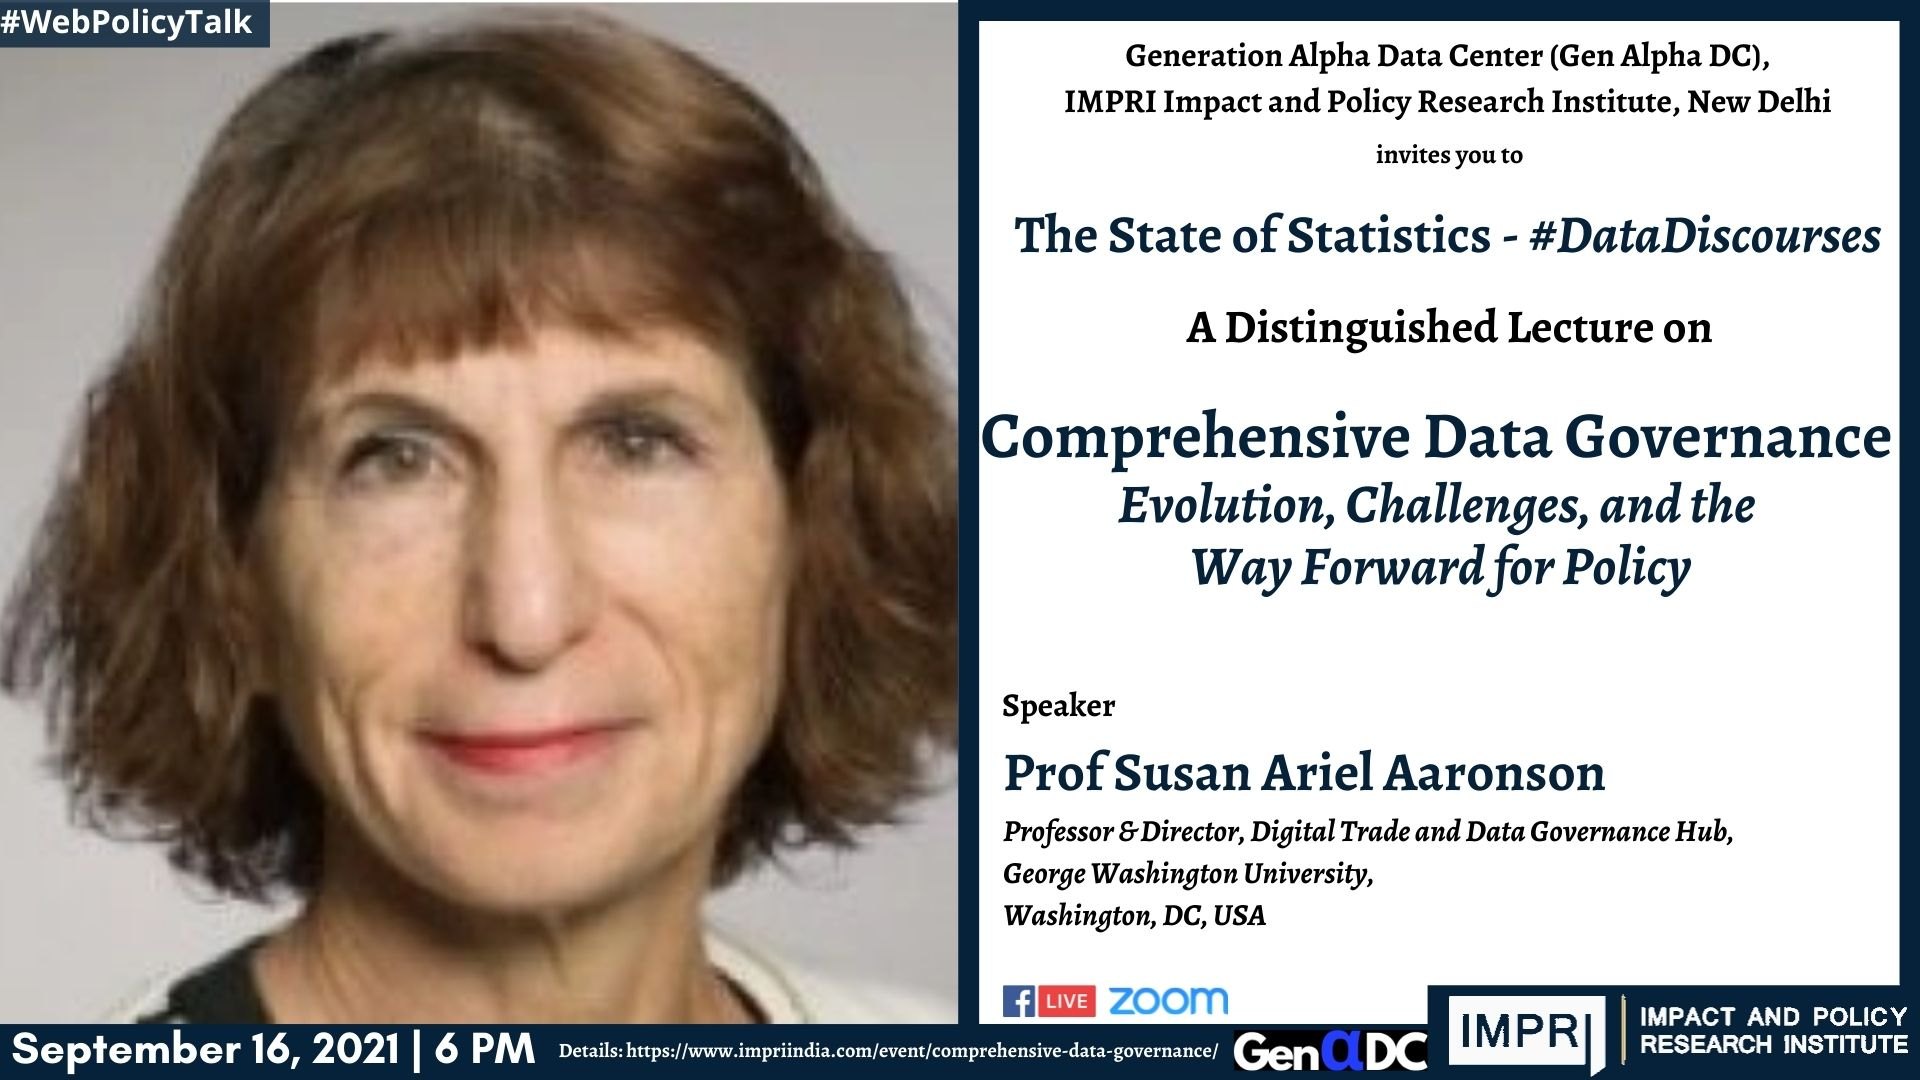 Comprehensive Data Governance: Evolution, Challenges, and the Way Forward for Policy